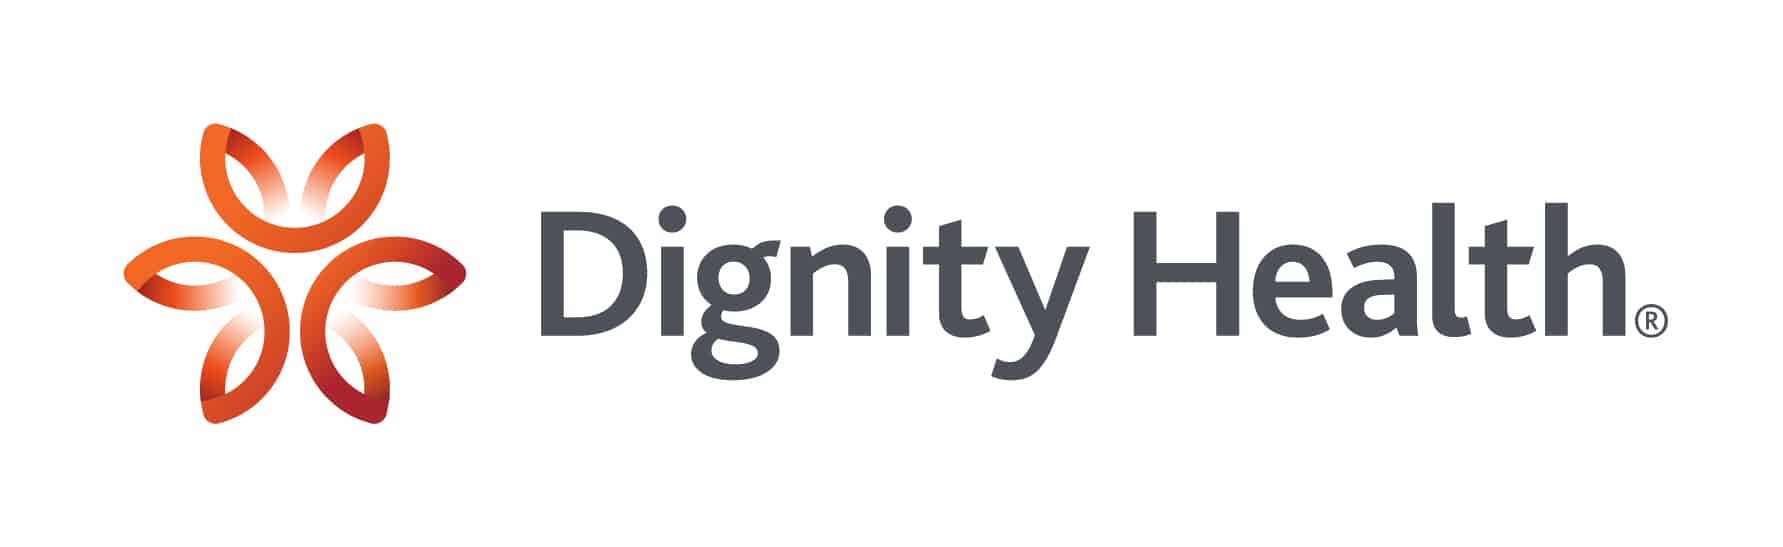 dignityhealth-1614728697